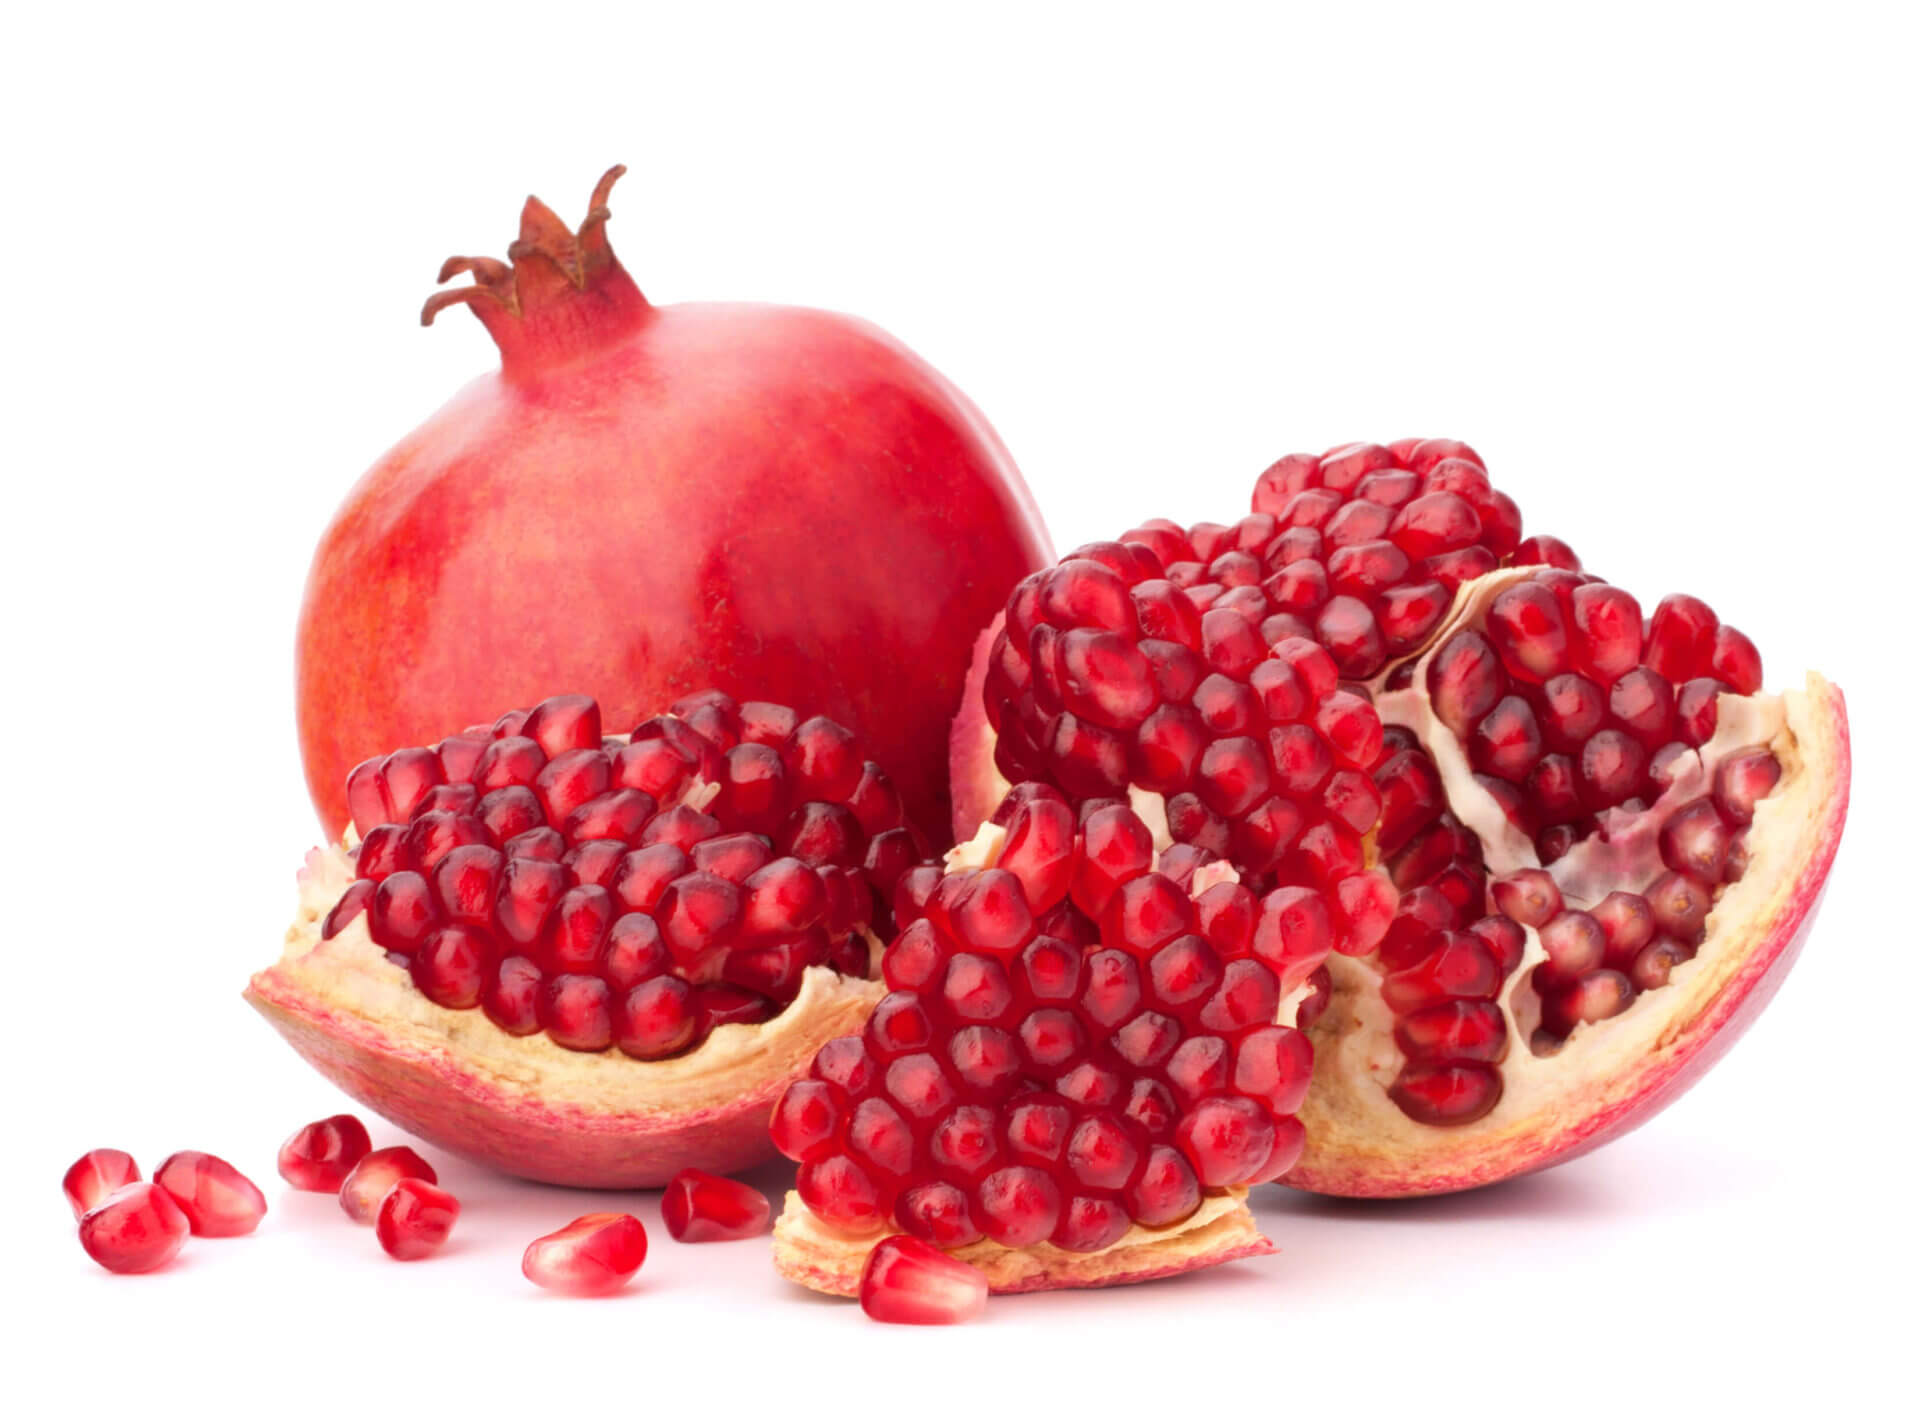 Pomegranate: How to Select, Store, and Serve